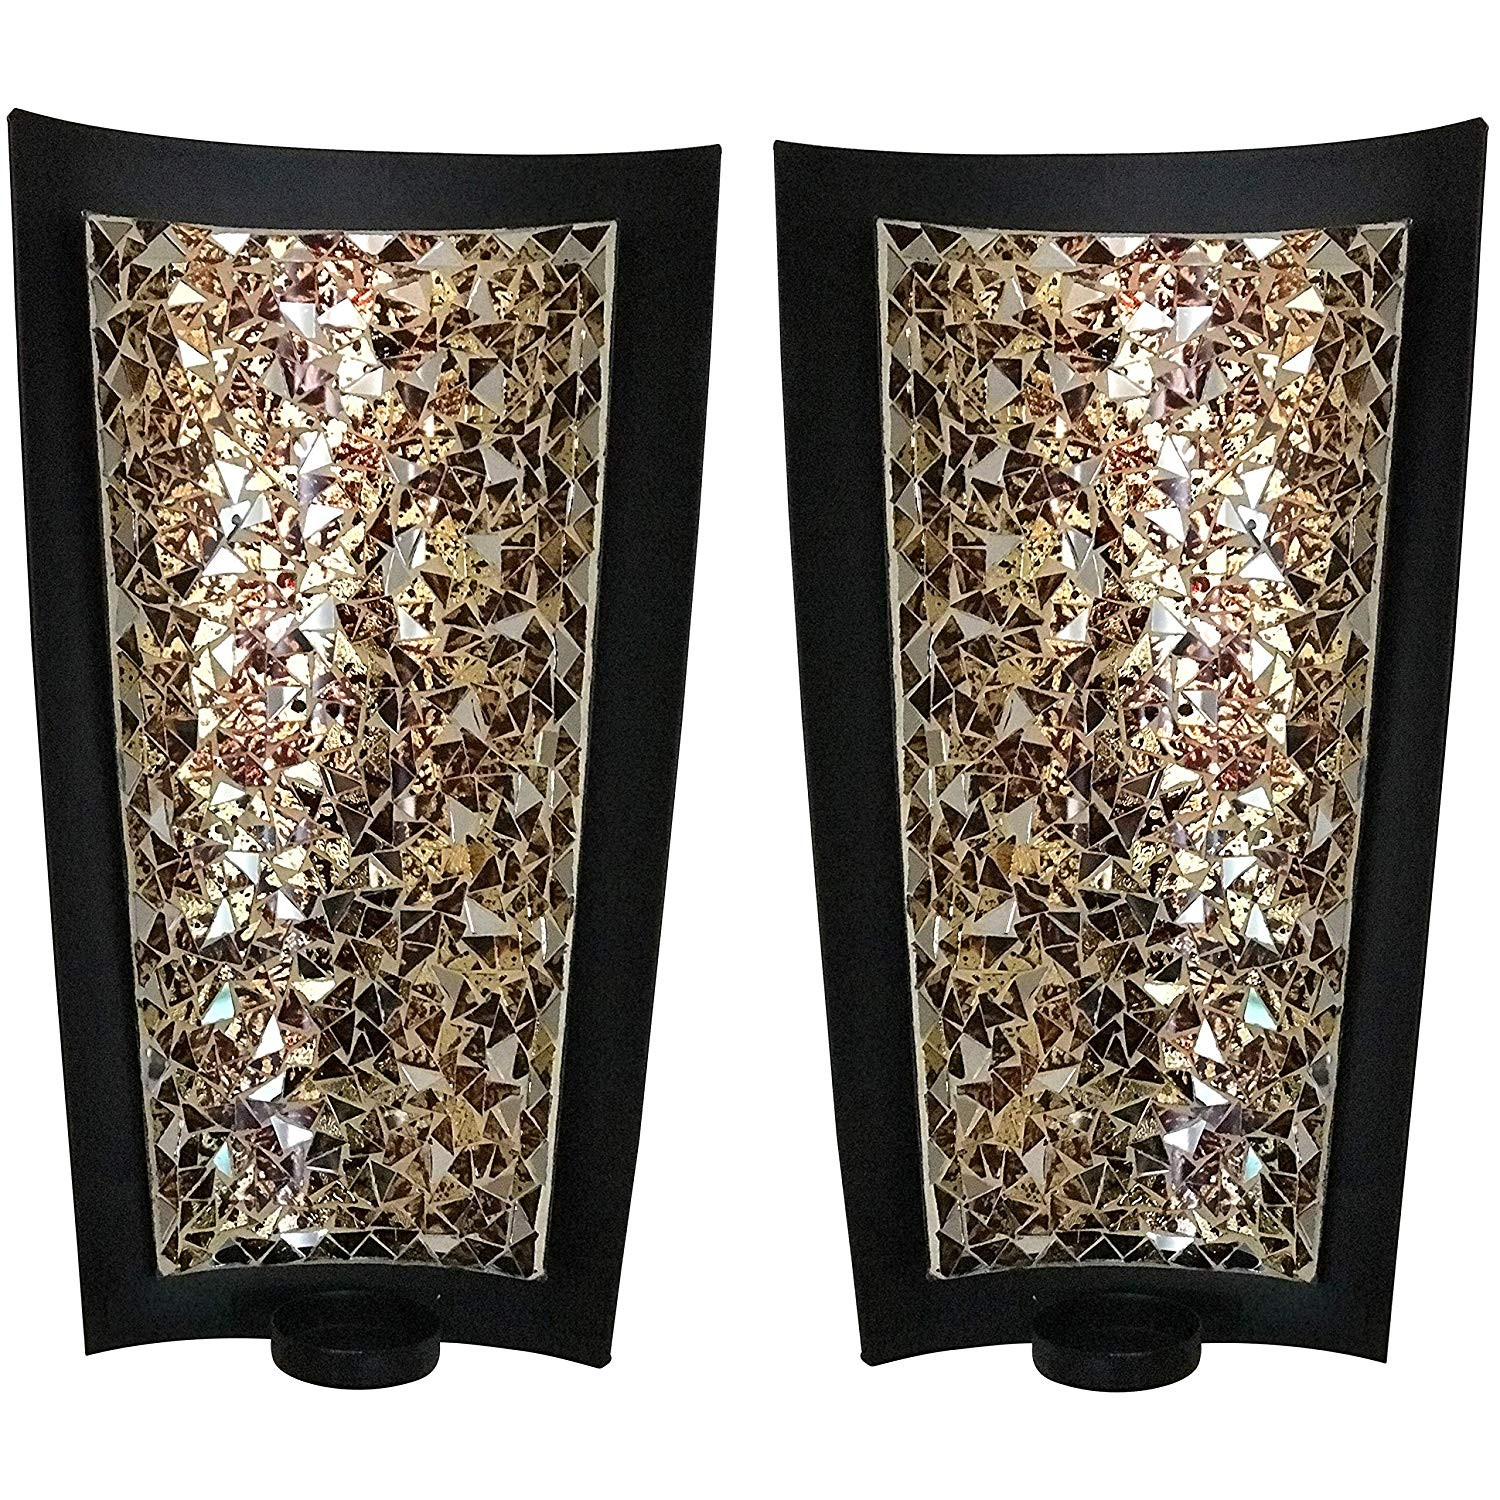 Buy Best Golden Sands 15 Inch Mosaic Wall Sconces Tealight Candle Holders